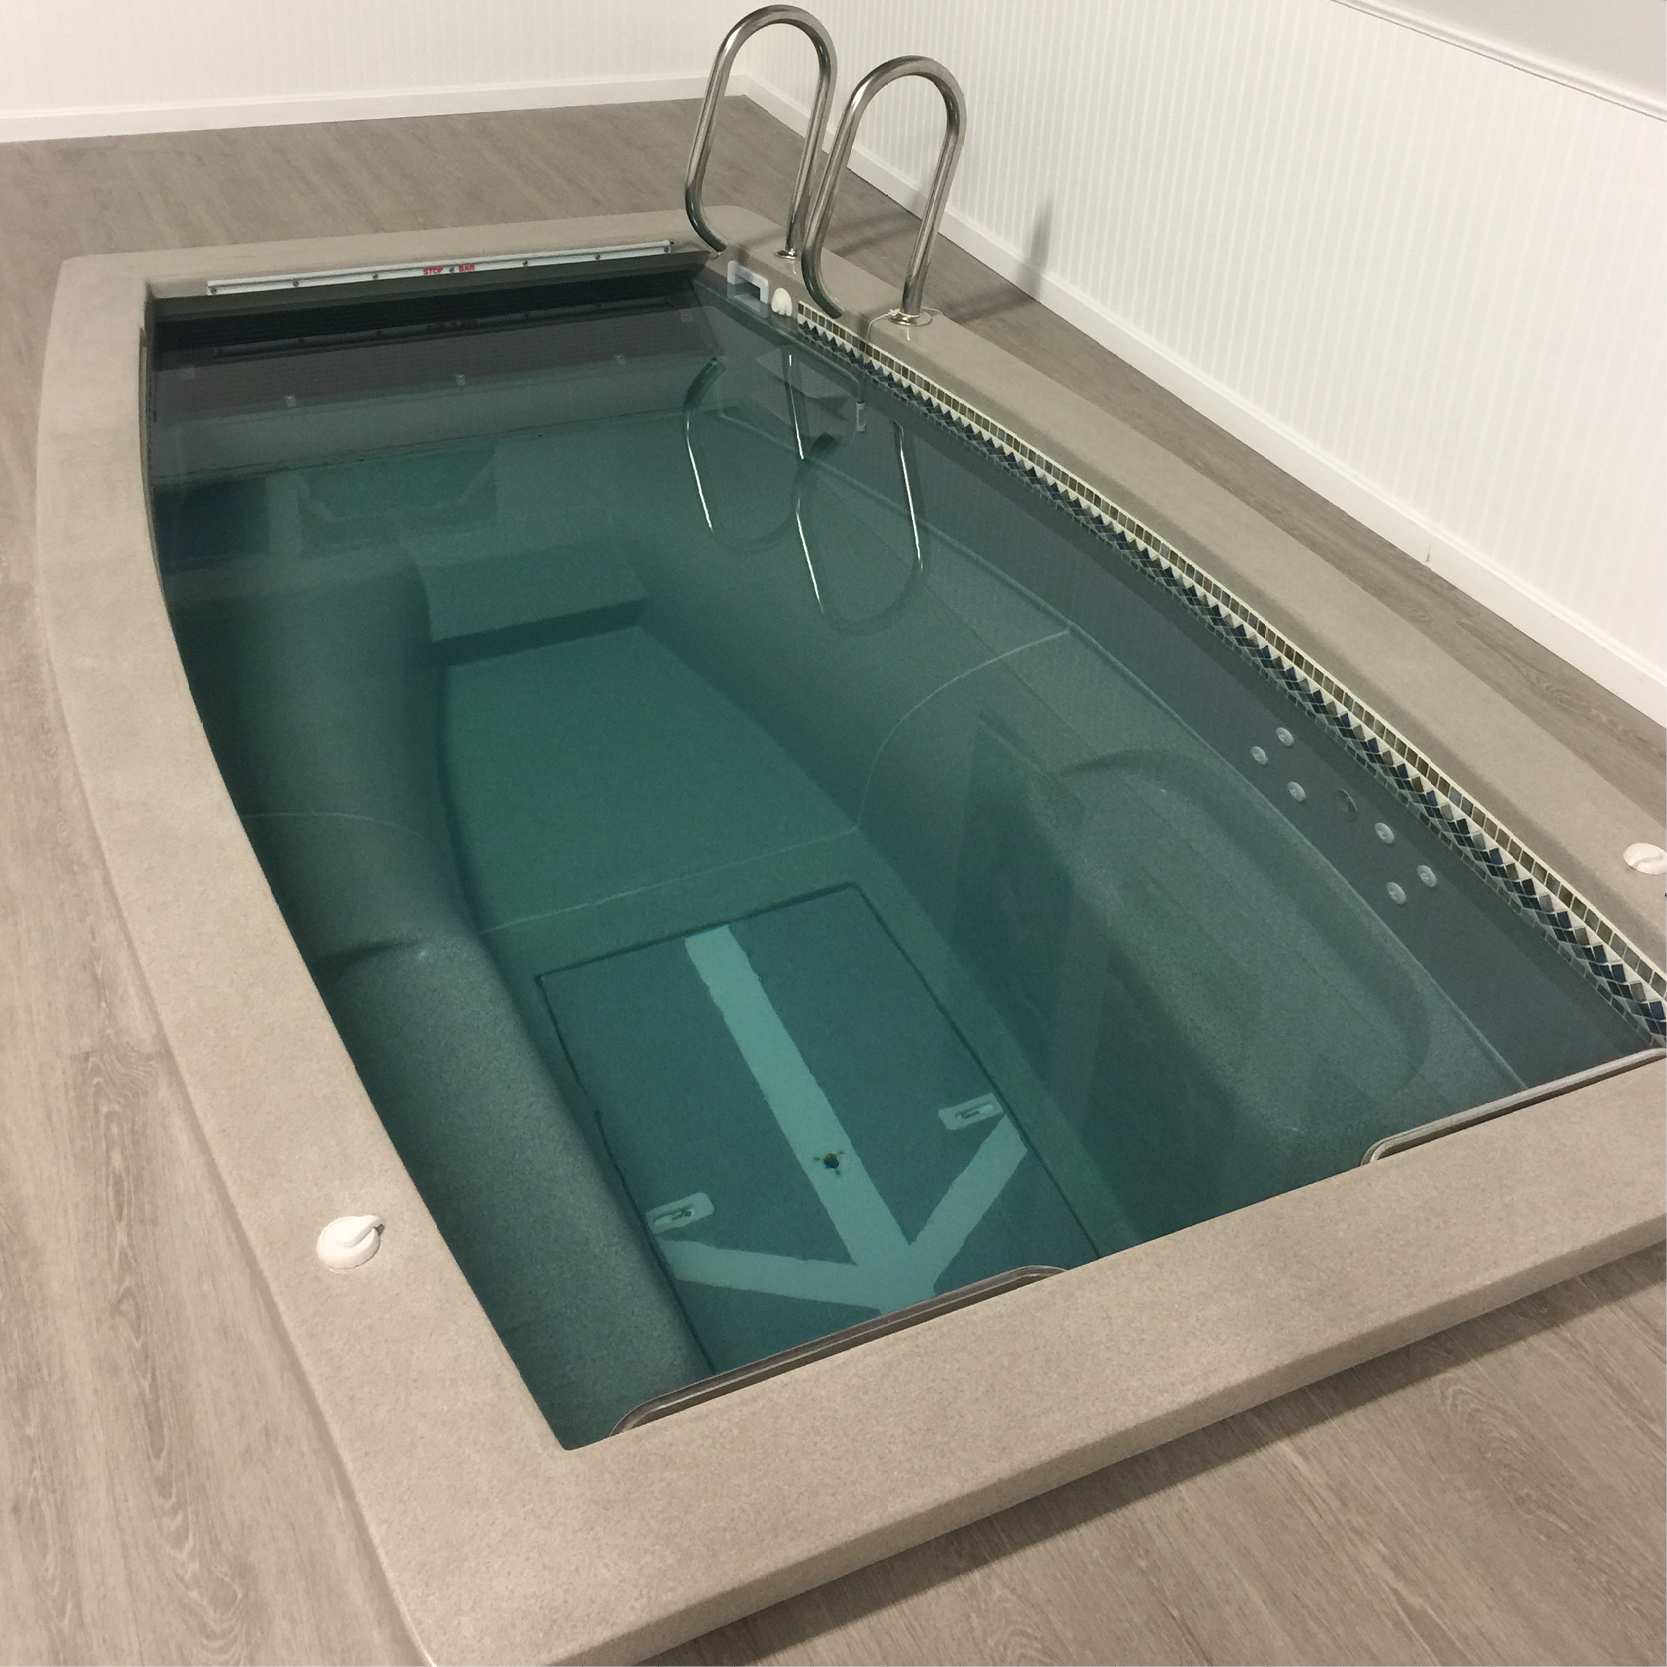 Learn About Swimex Residential Swim Spas Easy To Maintain And Economical To Run Our Lap Pools Resistance P Swim Spa Indoor Pool Design Swimming Pool Designs